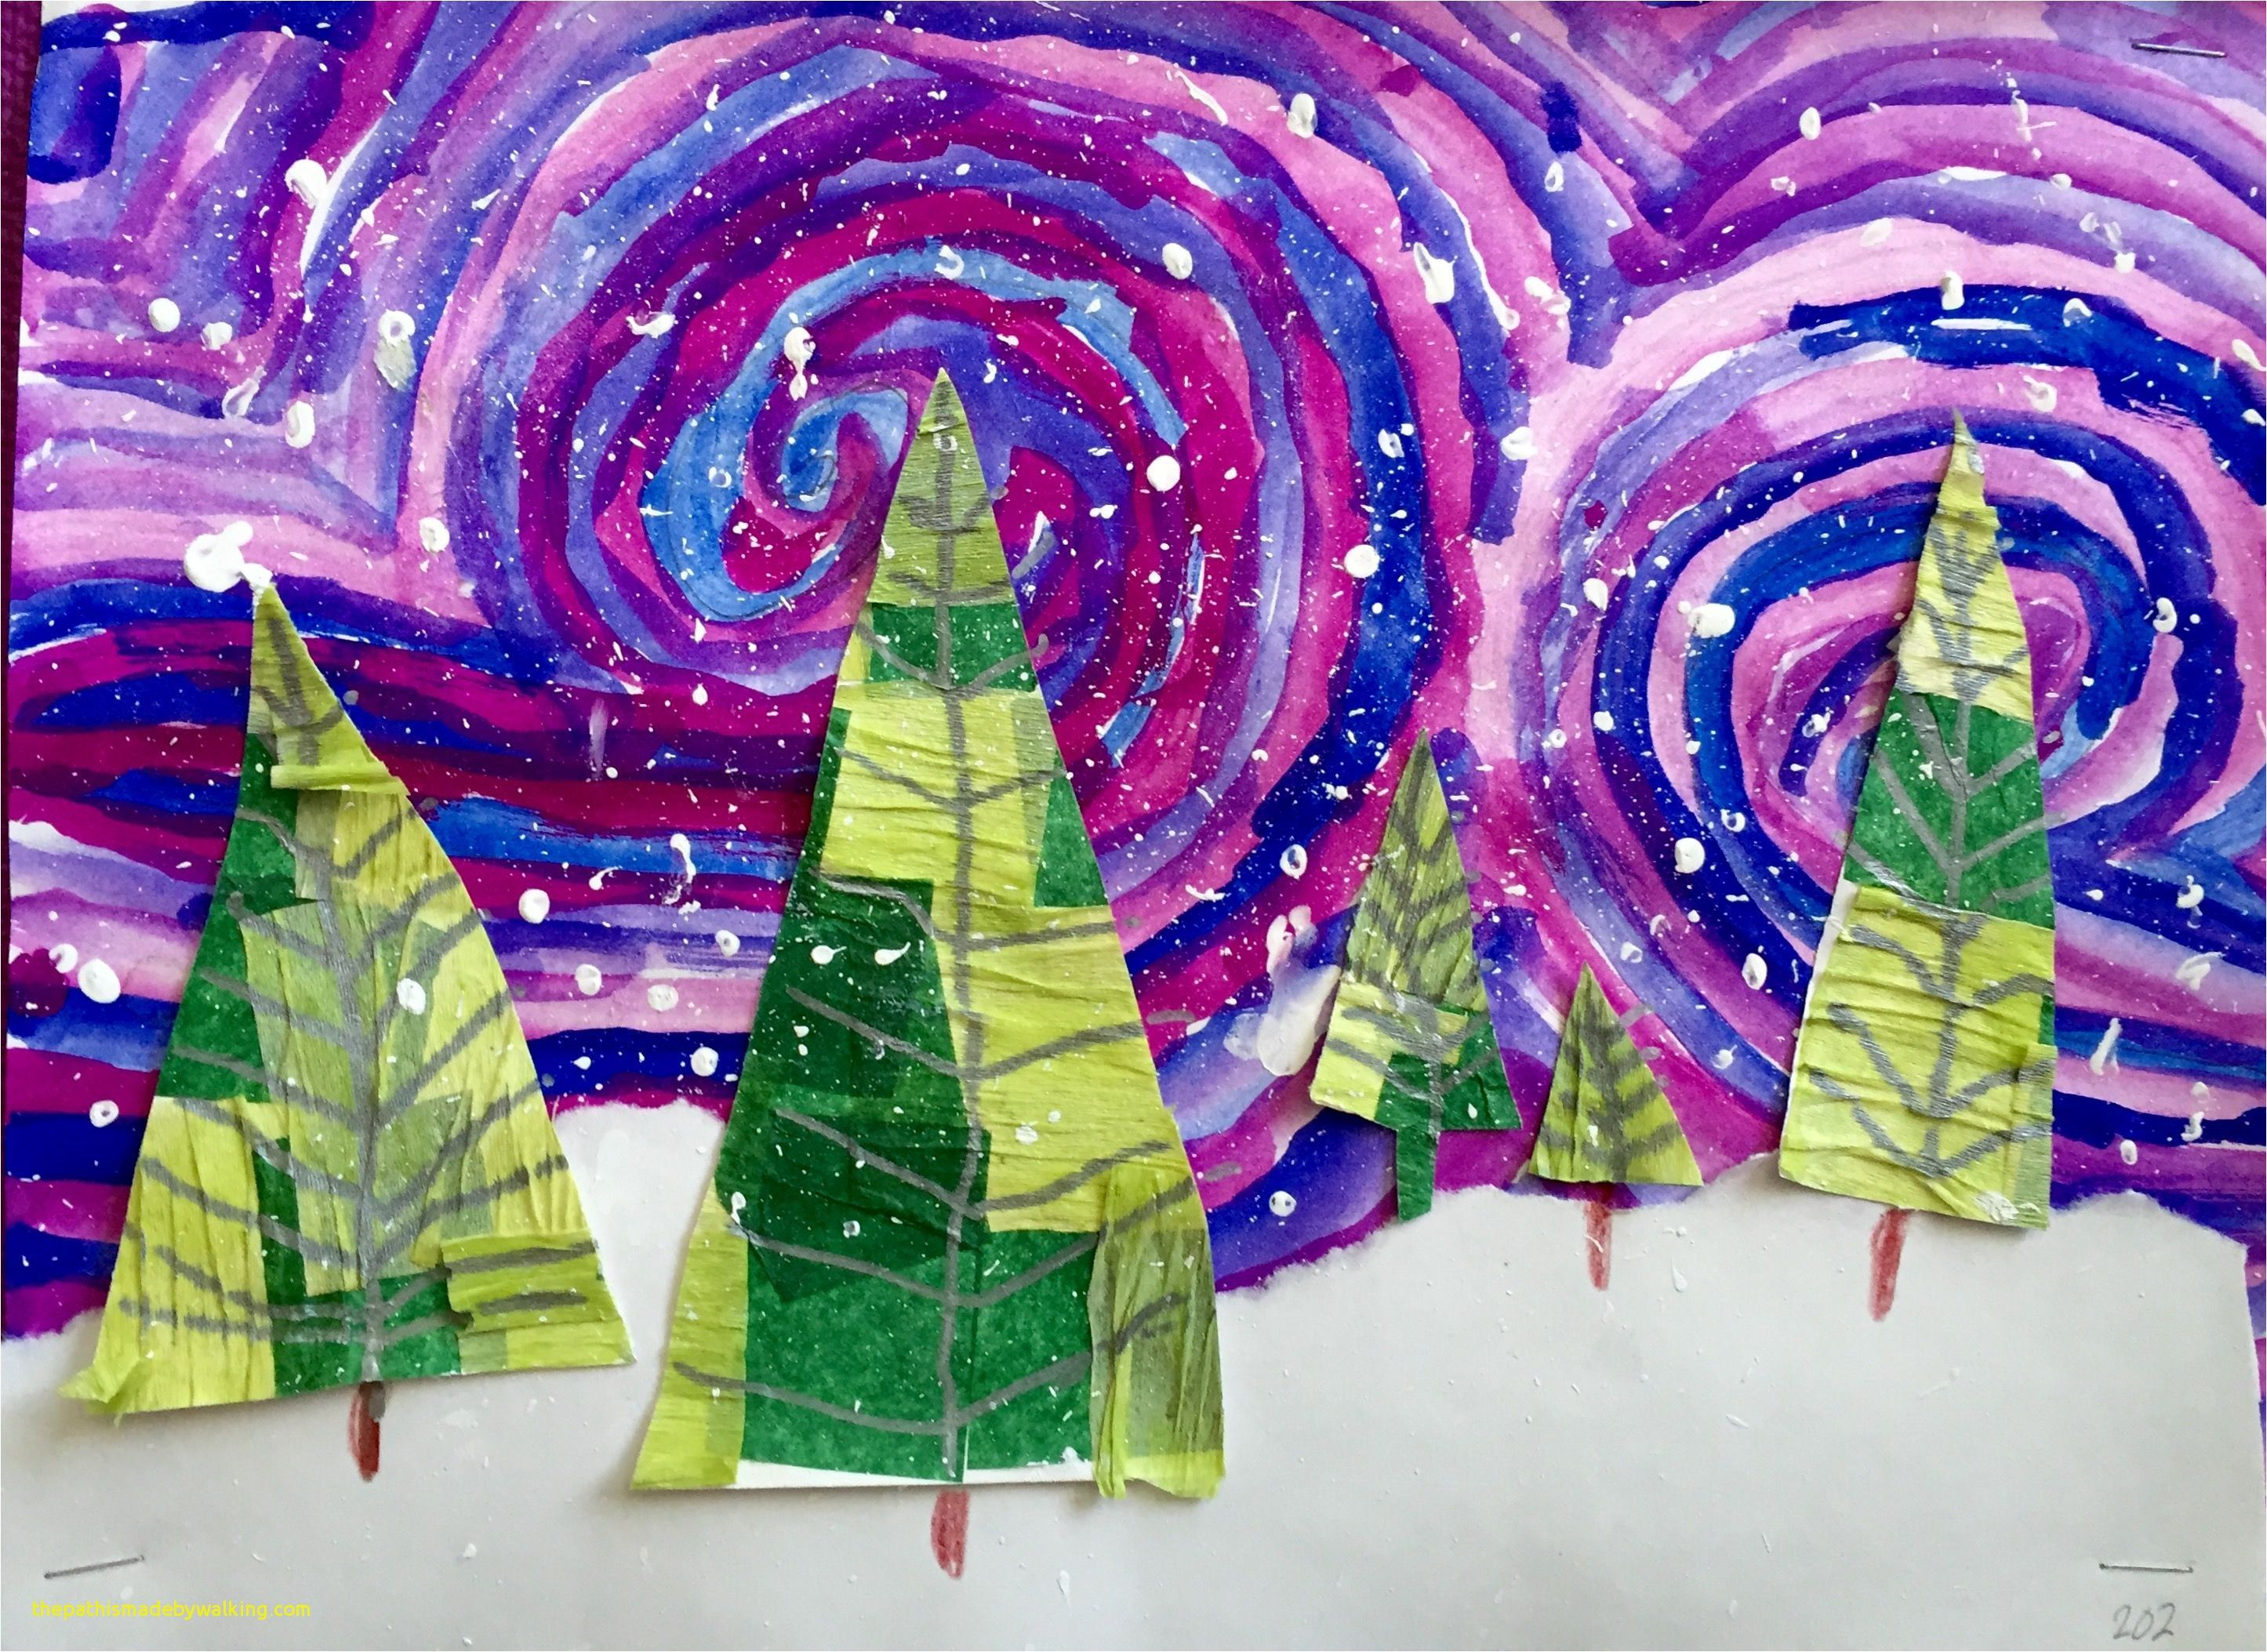 Christmas Art Projects For Middle School Awesome Image